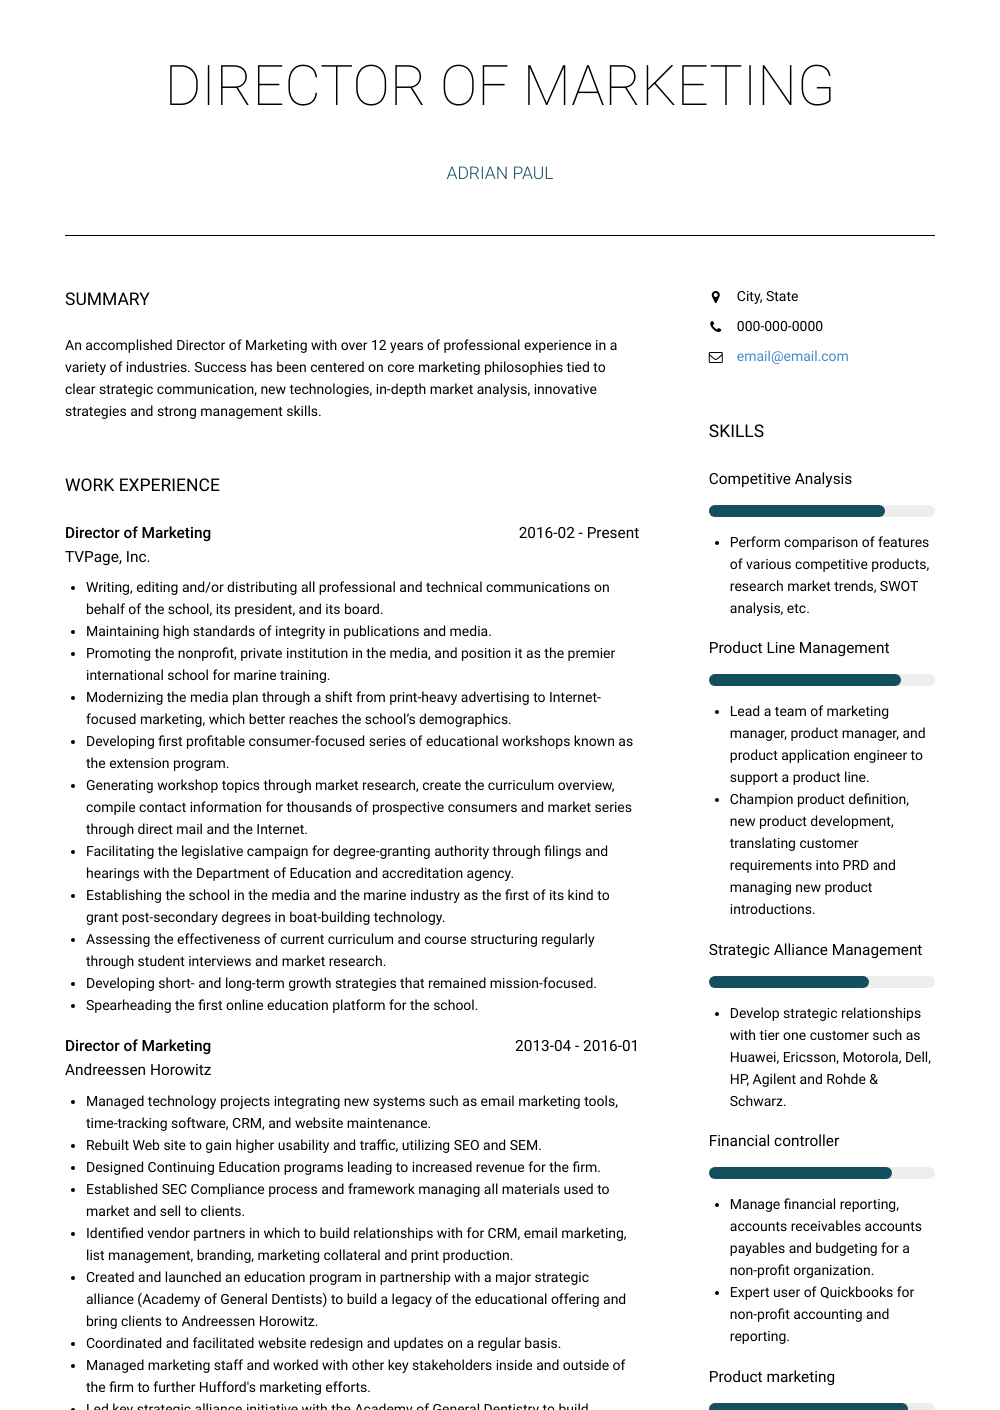 Director Of Marketing Resume Samples & Templates VisualCV